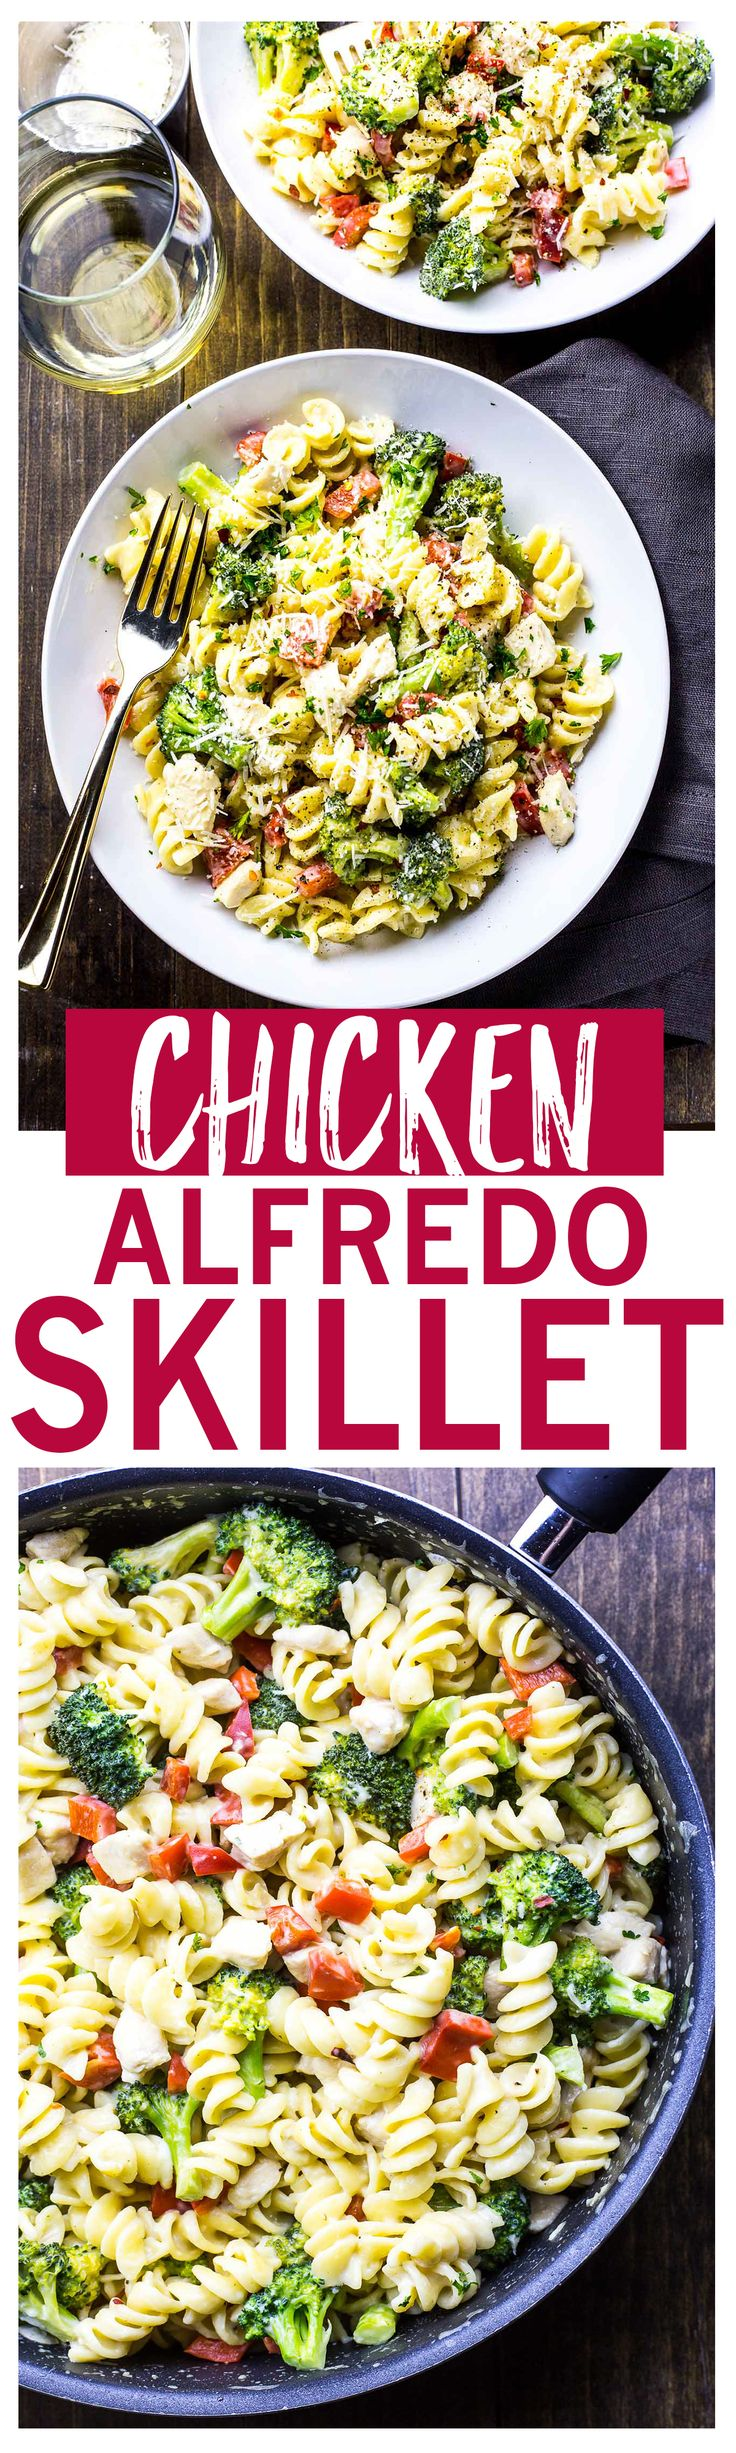 40-Minute Broccoli Chicken Alfredo Skillet with a lighter, healthier alfredo sauce.